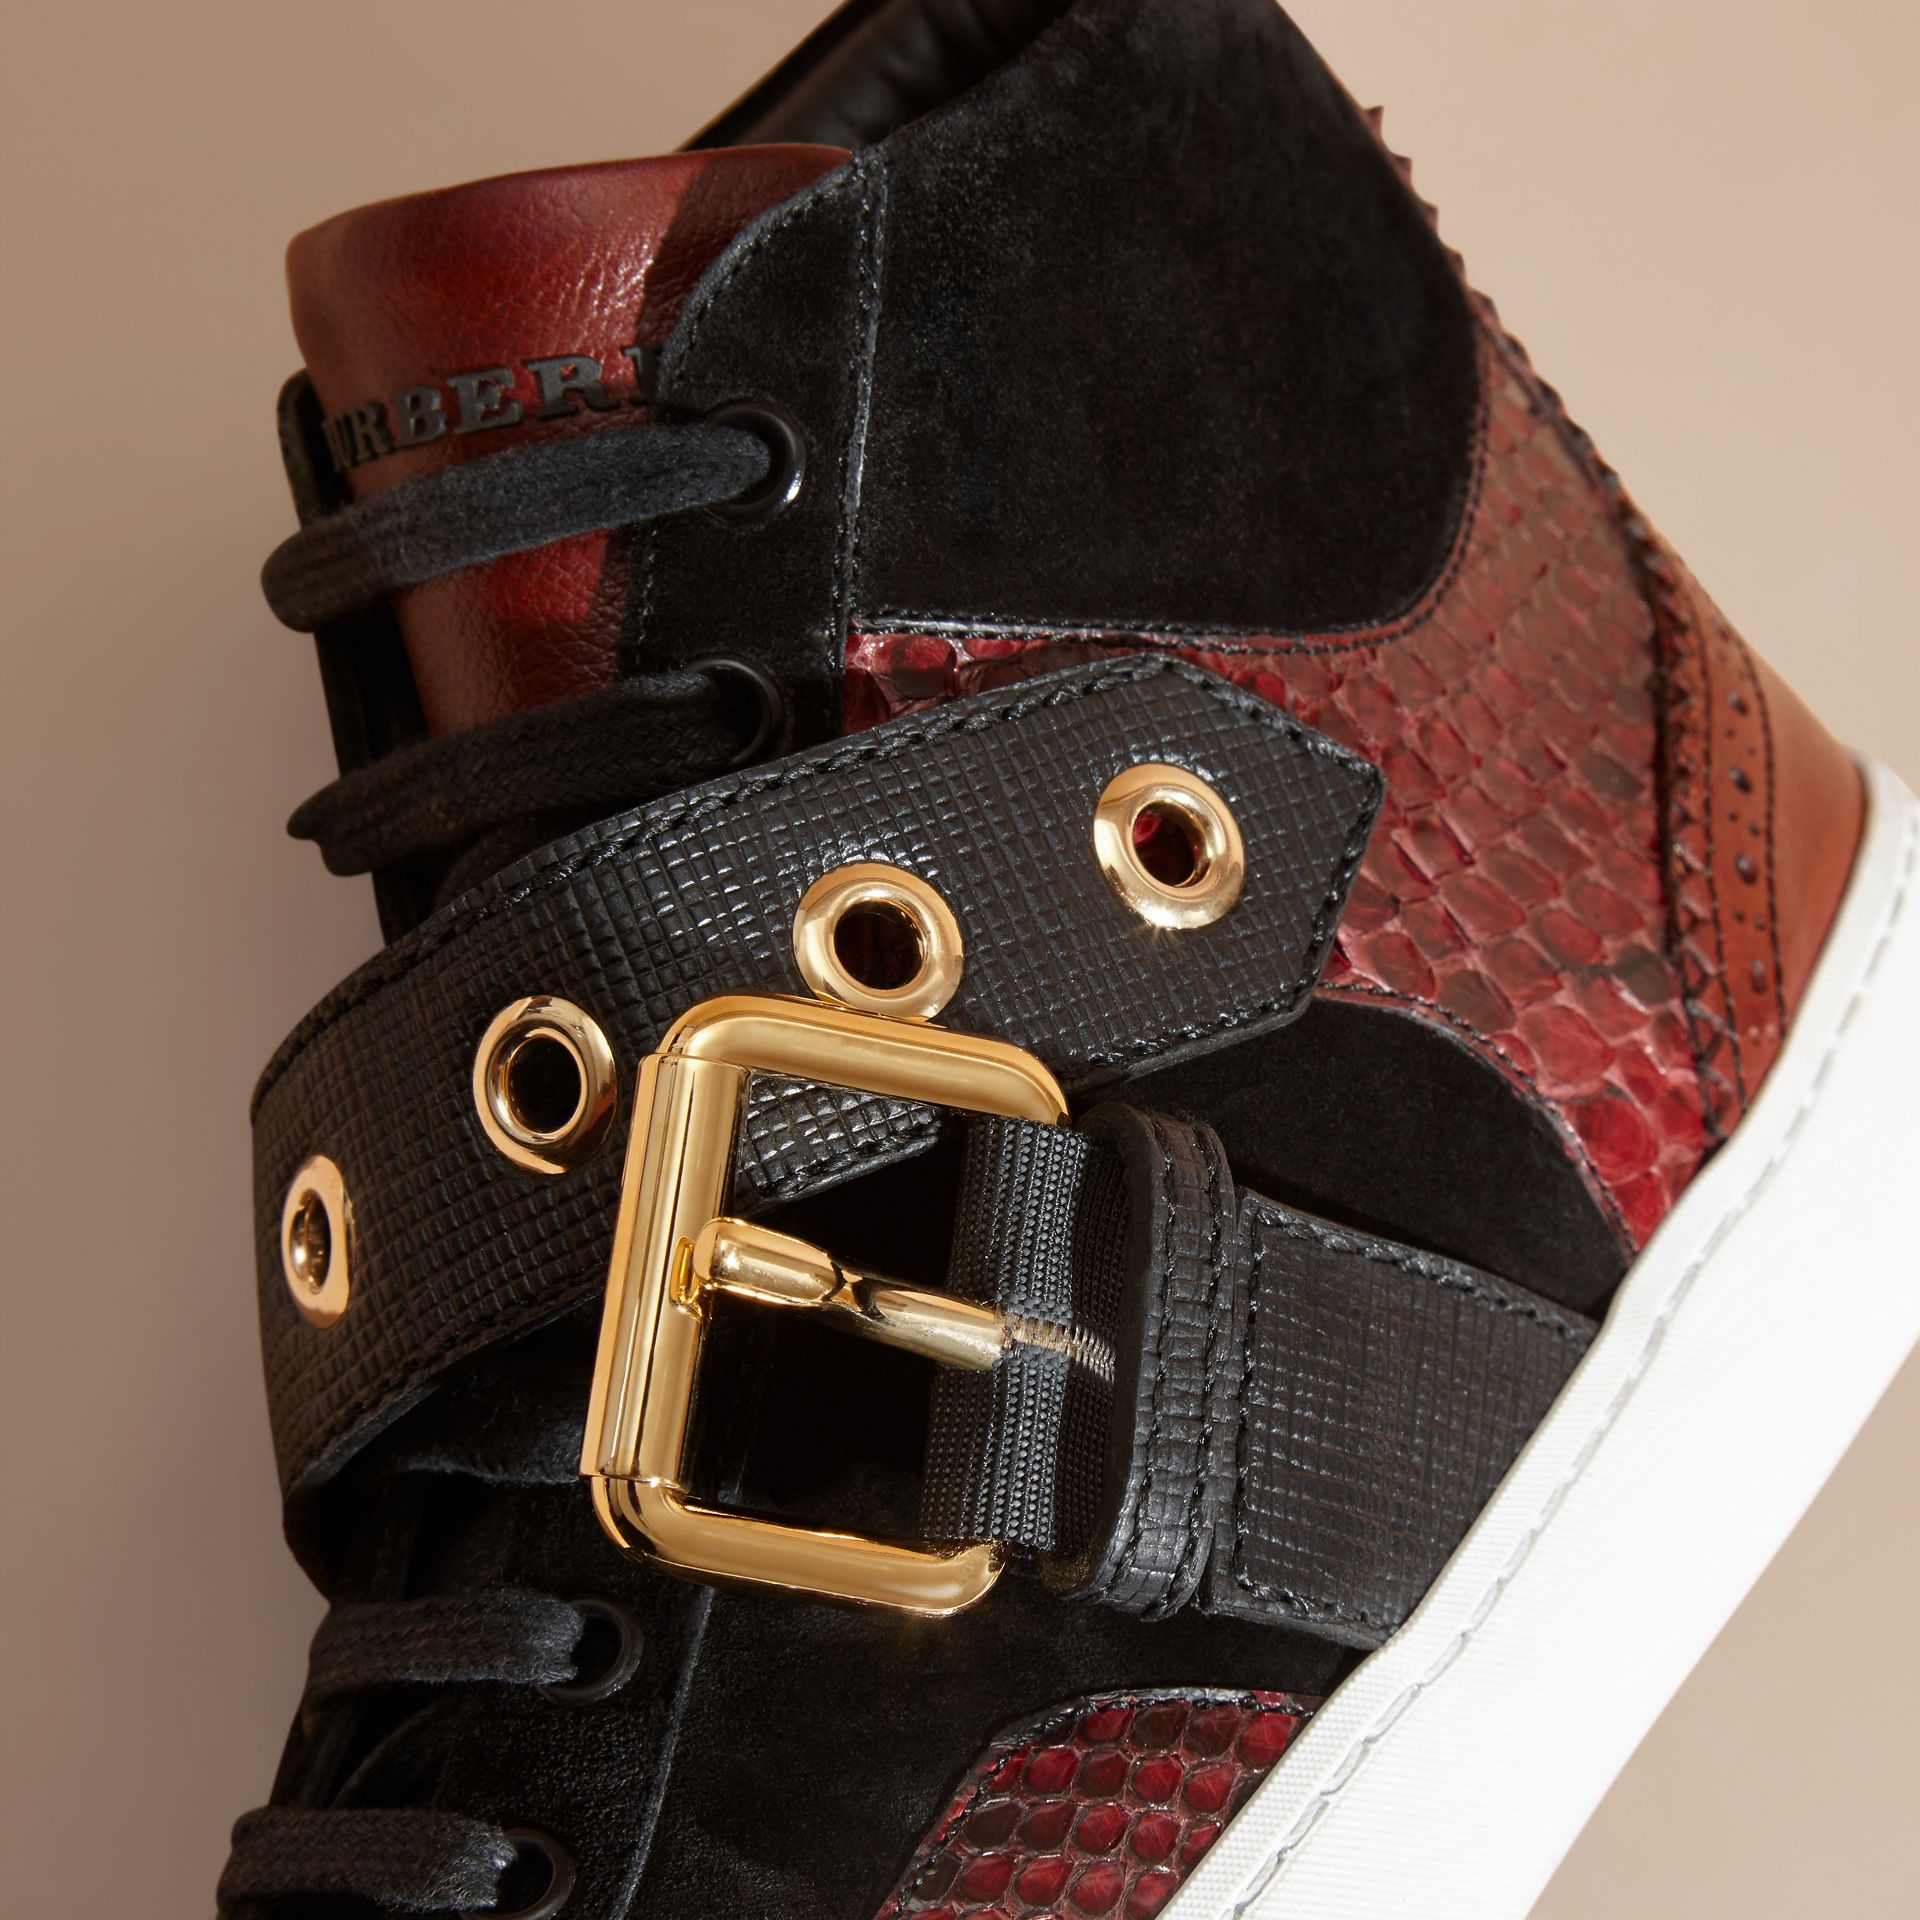 Bordeaux Buckle Detail Leather and Snakeskin High-top Trainers Bordeaux - gallery image 2